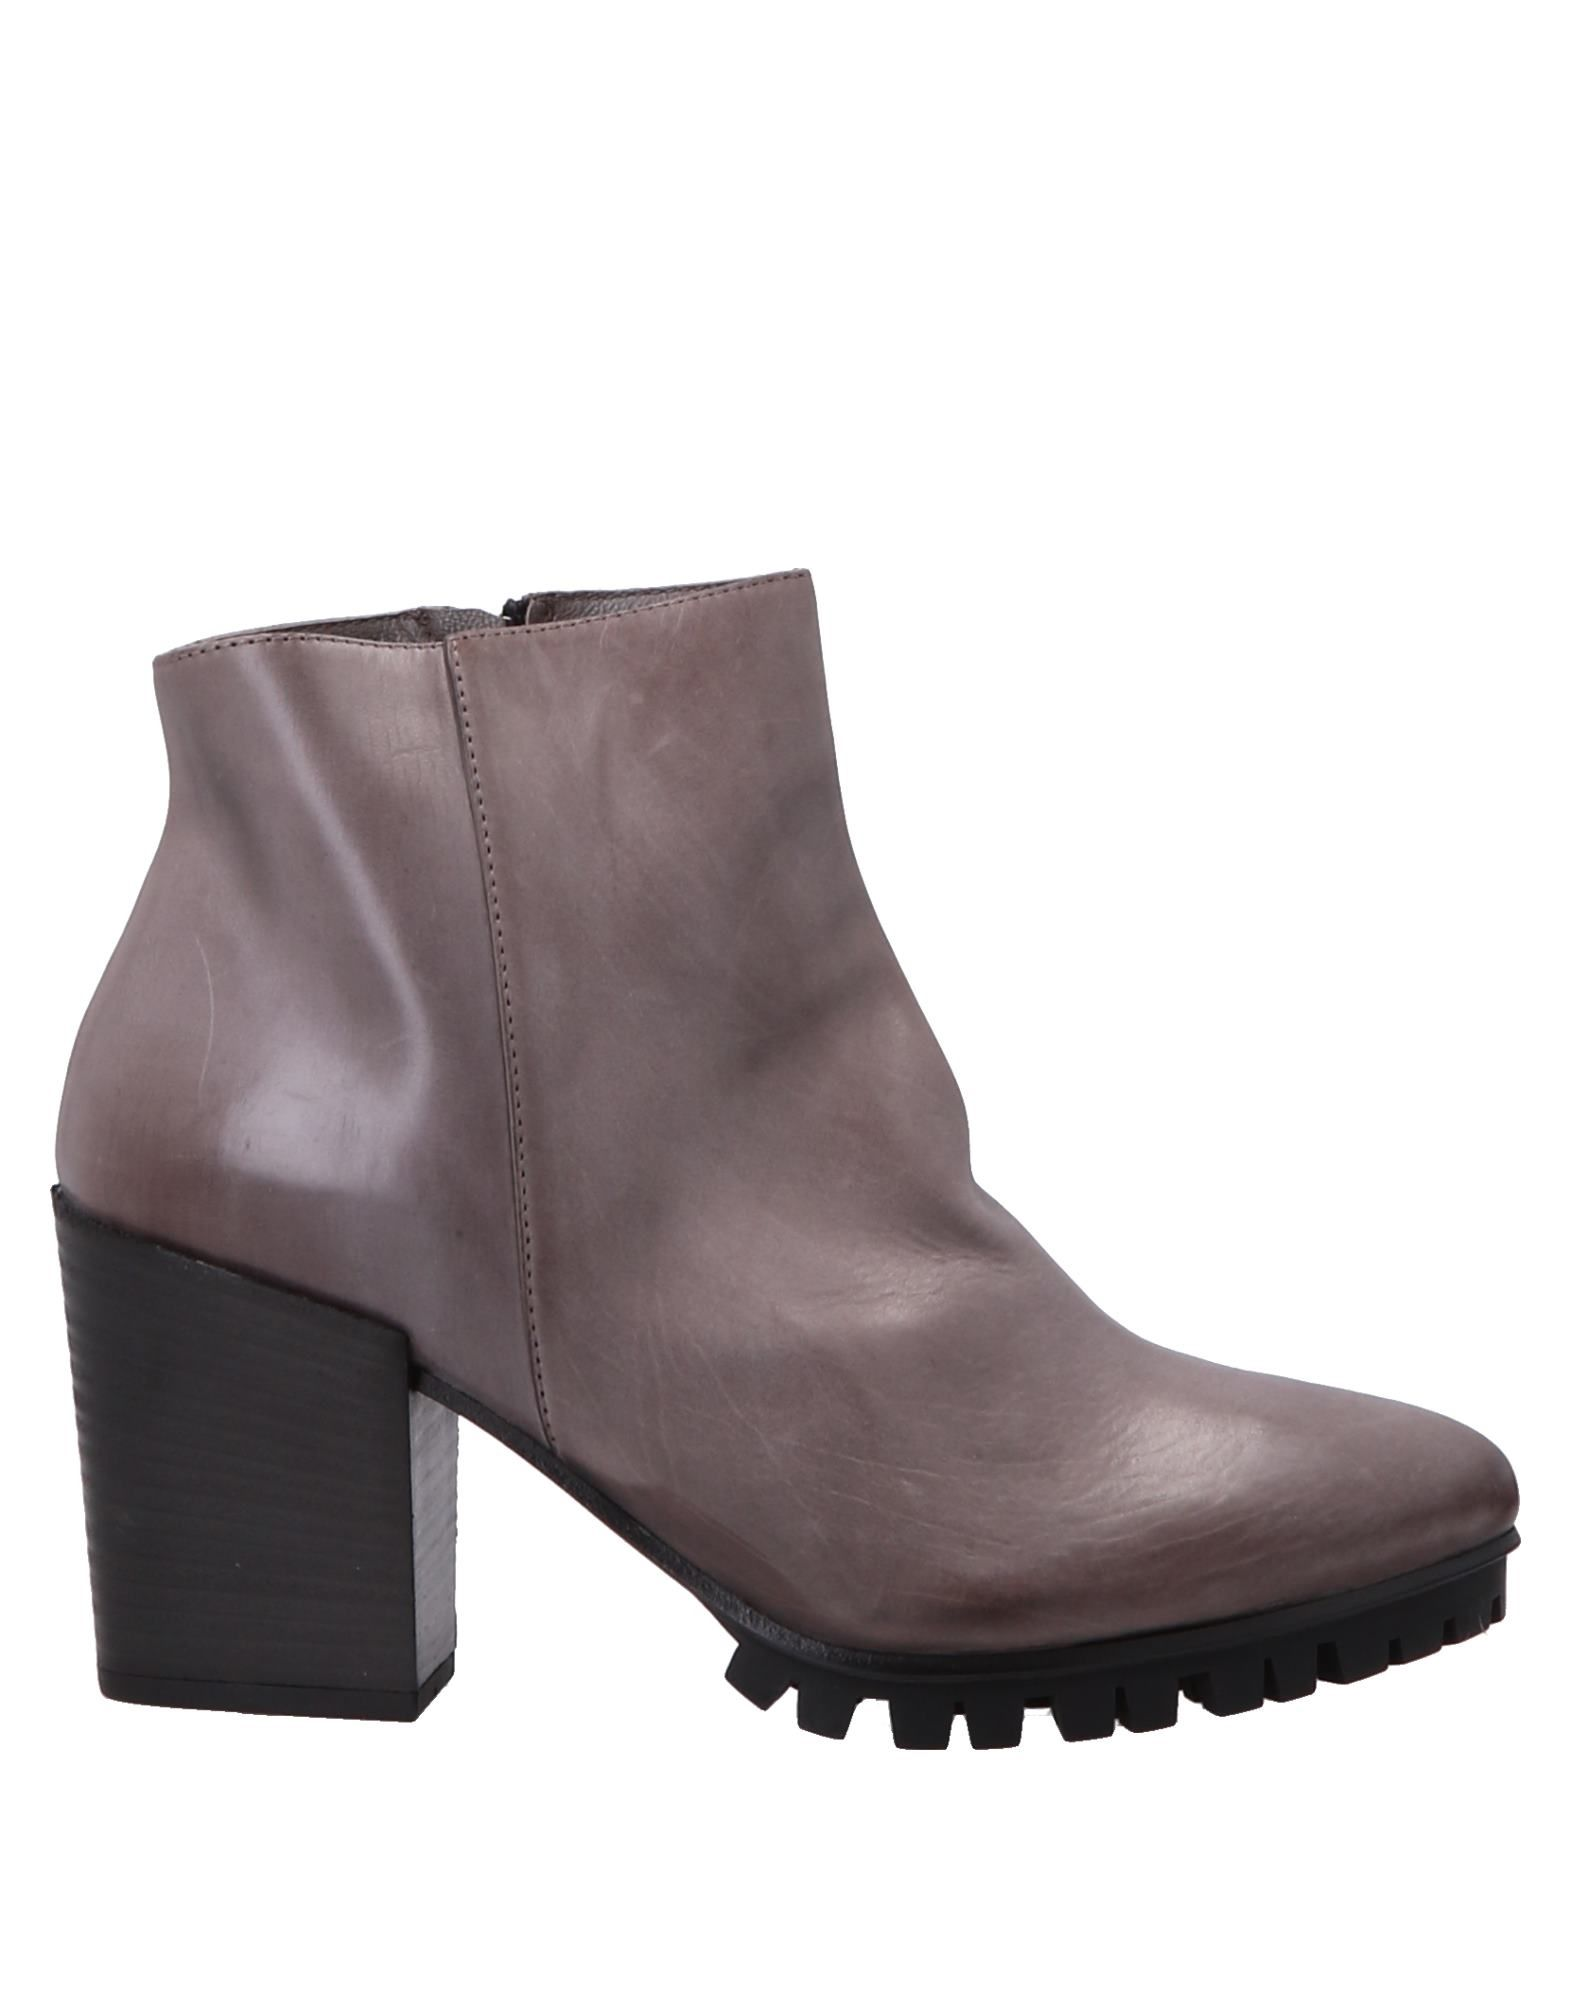 Vic Ankle Boot - Women on Vic Ankle Boots online on Women  Australia - 11316169VD ab15e0